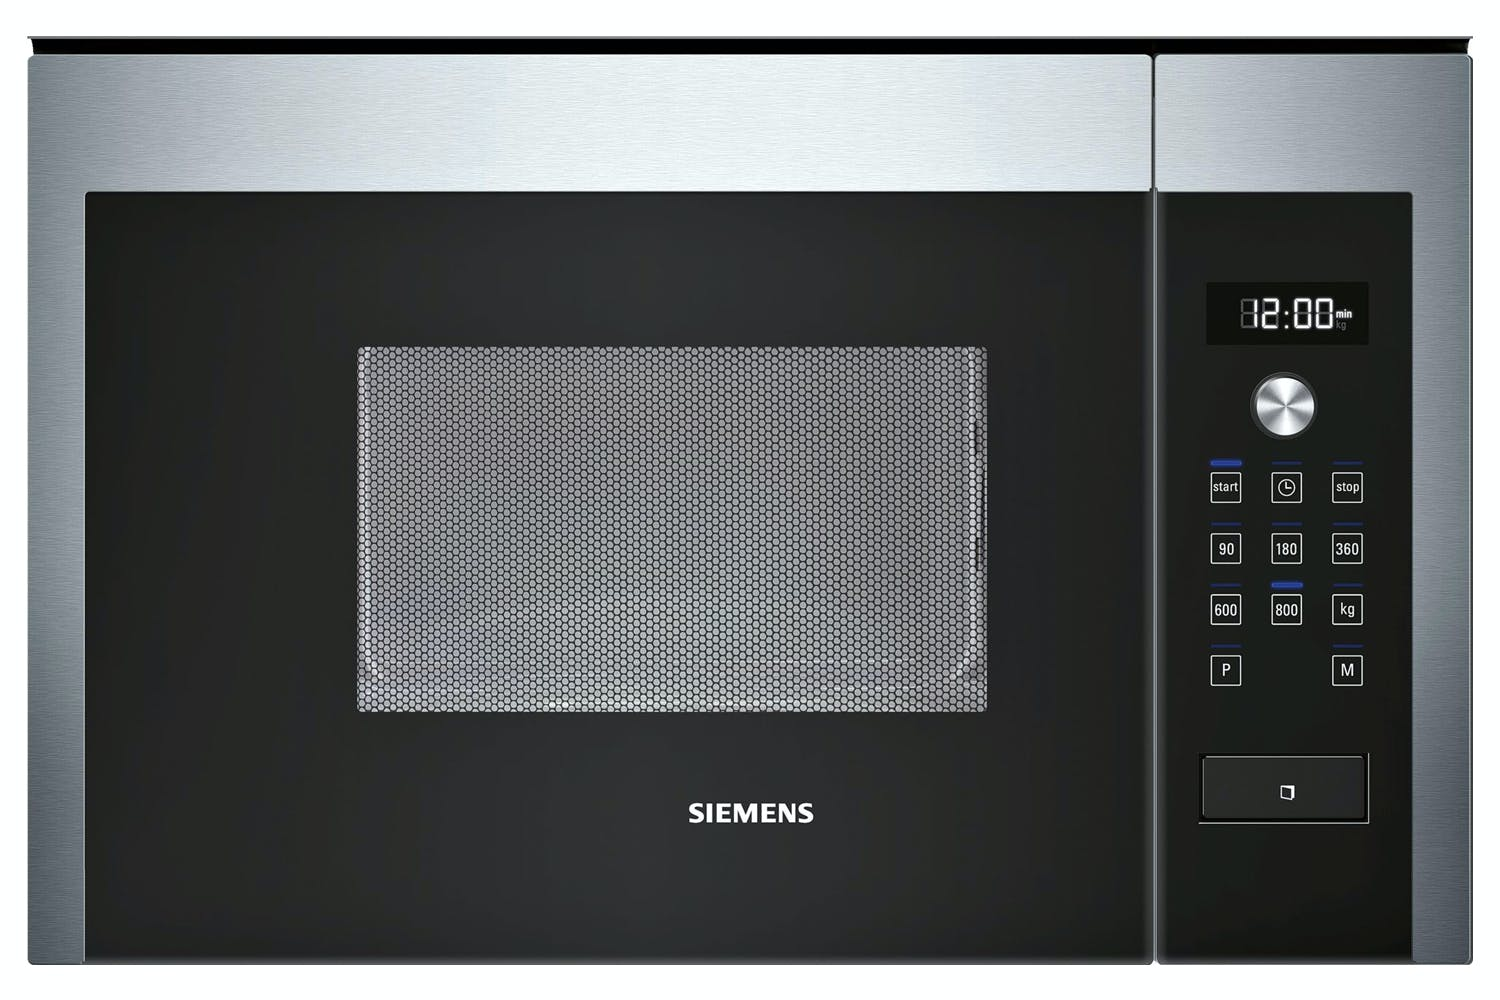 australia stainless gallery oven steel appliances interior jpg front microwave pd au solo cooking samsung l xsa